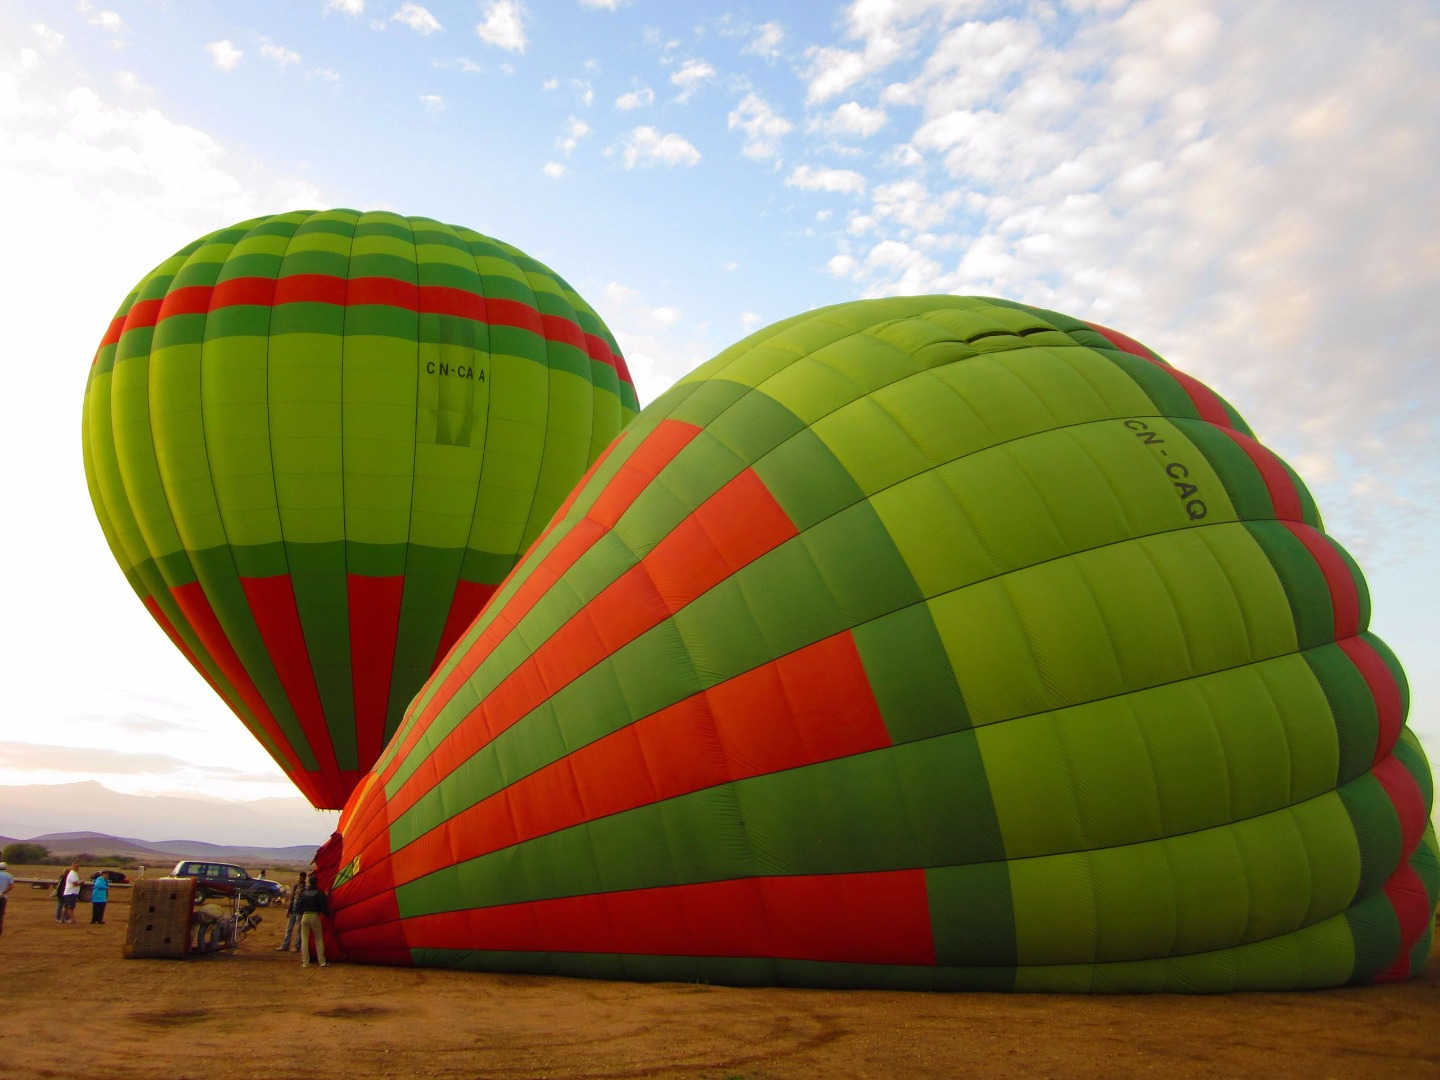 Hot Air Ballooning in Marrakech